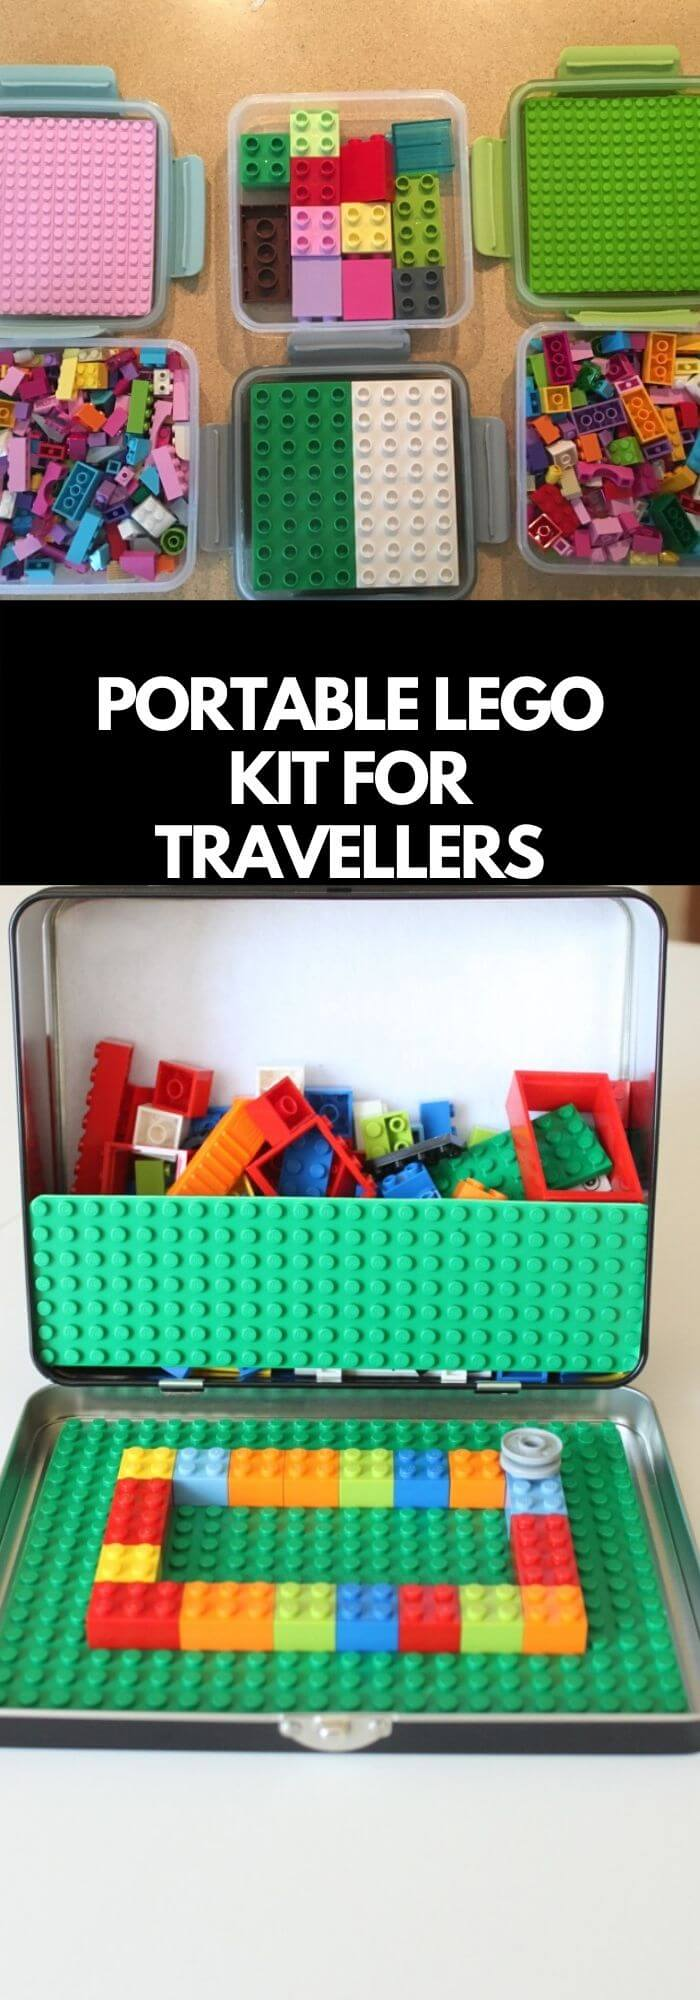 Turn travel into a blast with this portable Lego kit